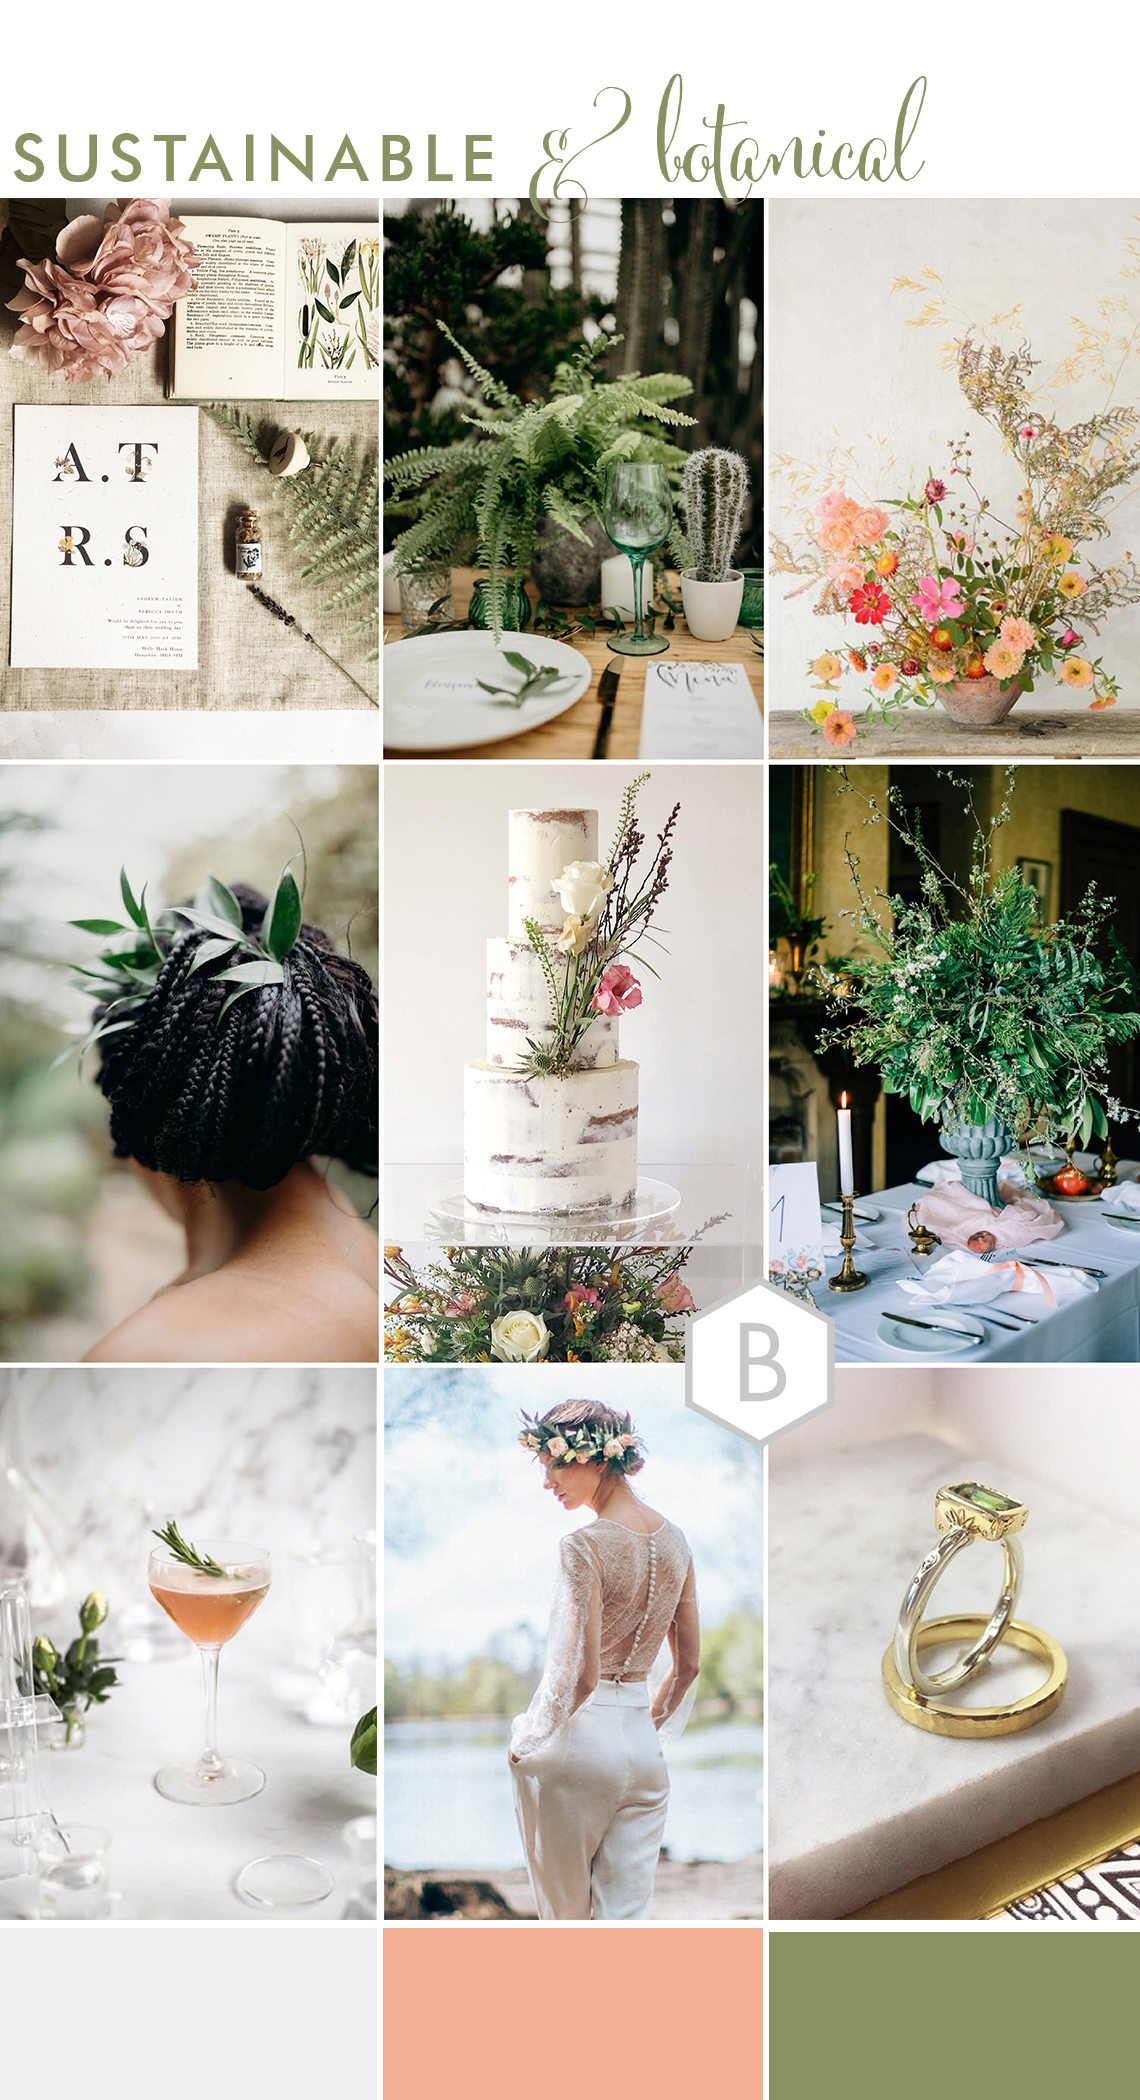 stylish sustainable wedding ideas by All Things Considered wedding planner Cambridgeshire